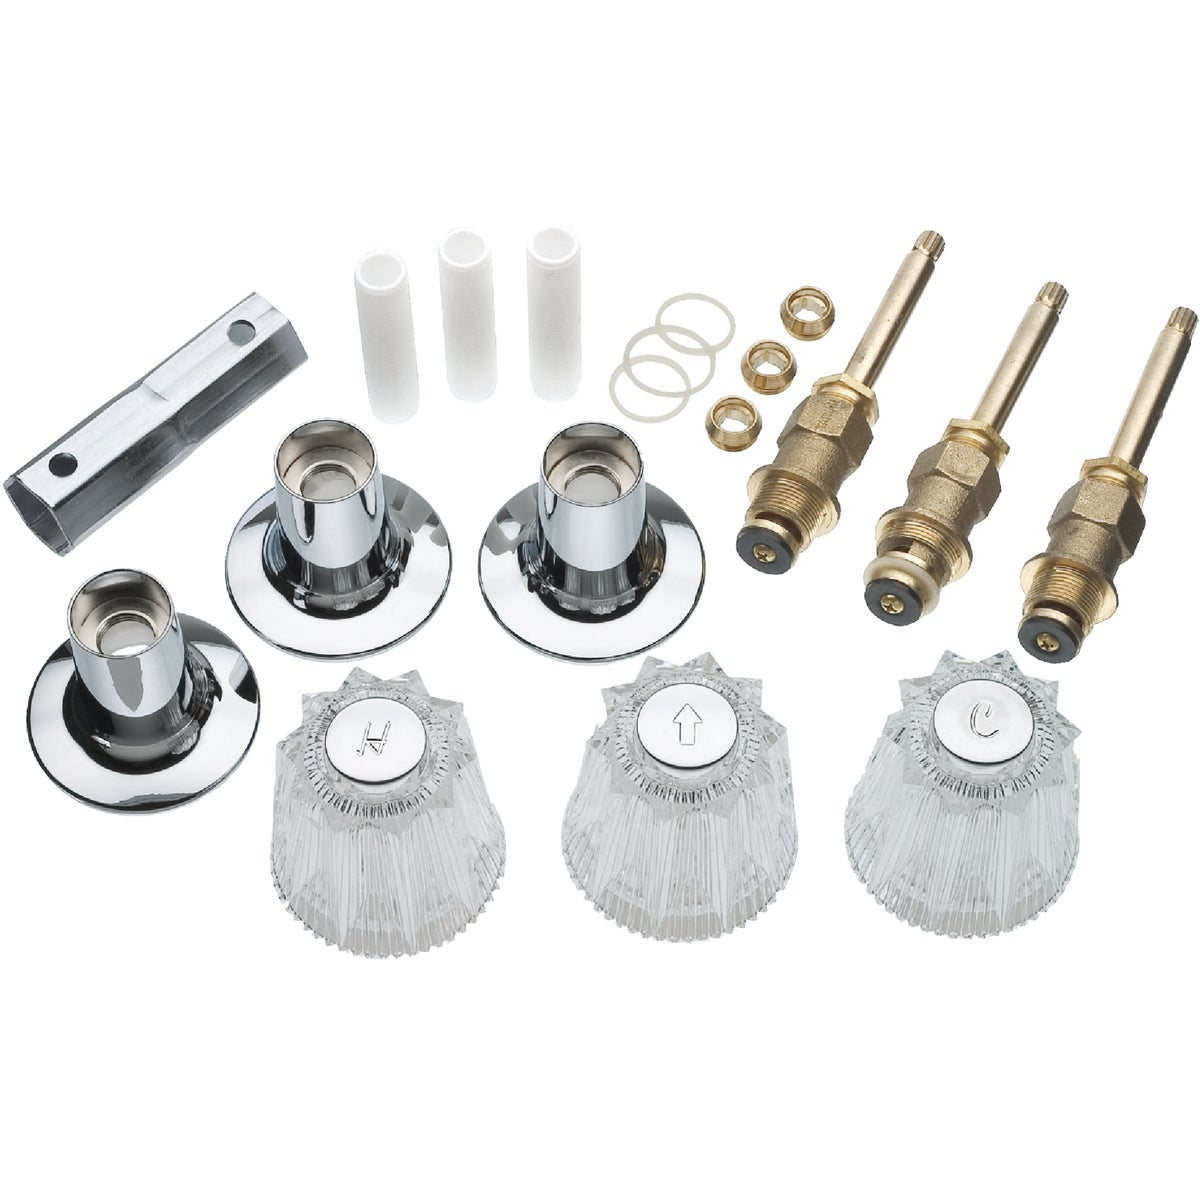 PFISTER REPAIR KIT - 39630 by Danco Perfect Match